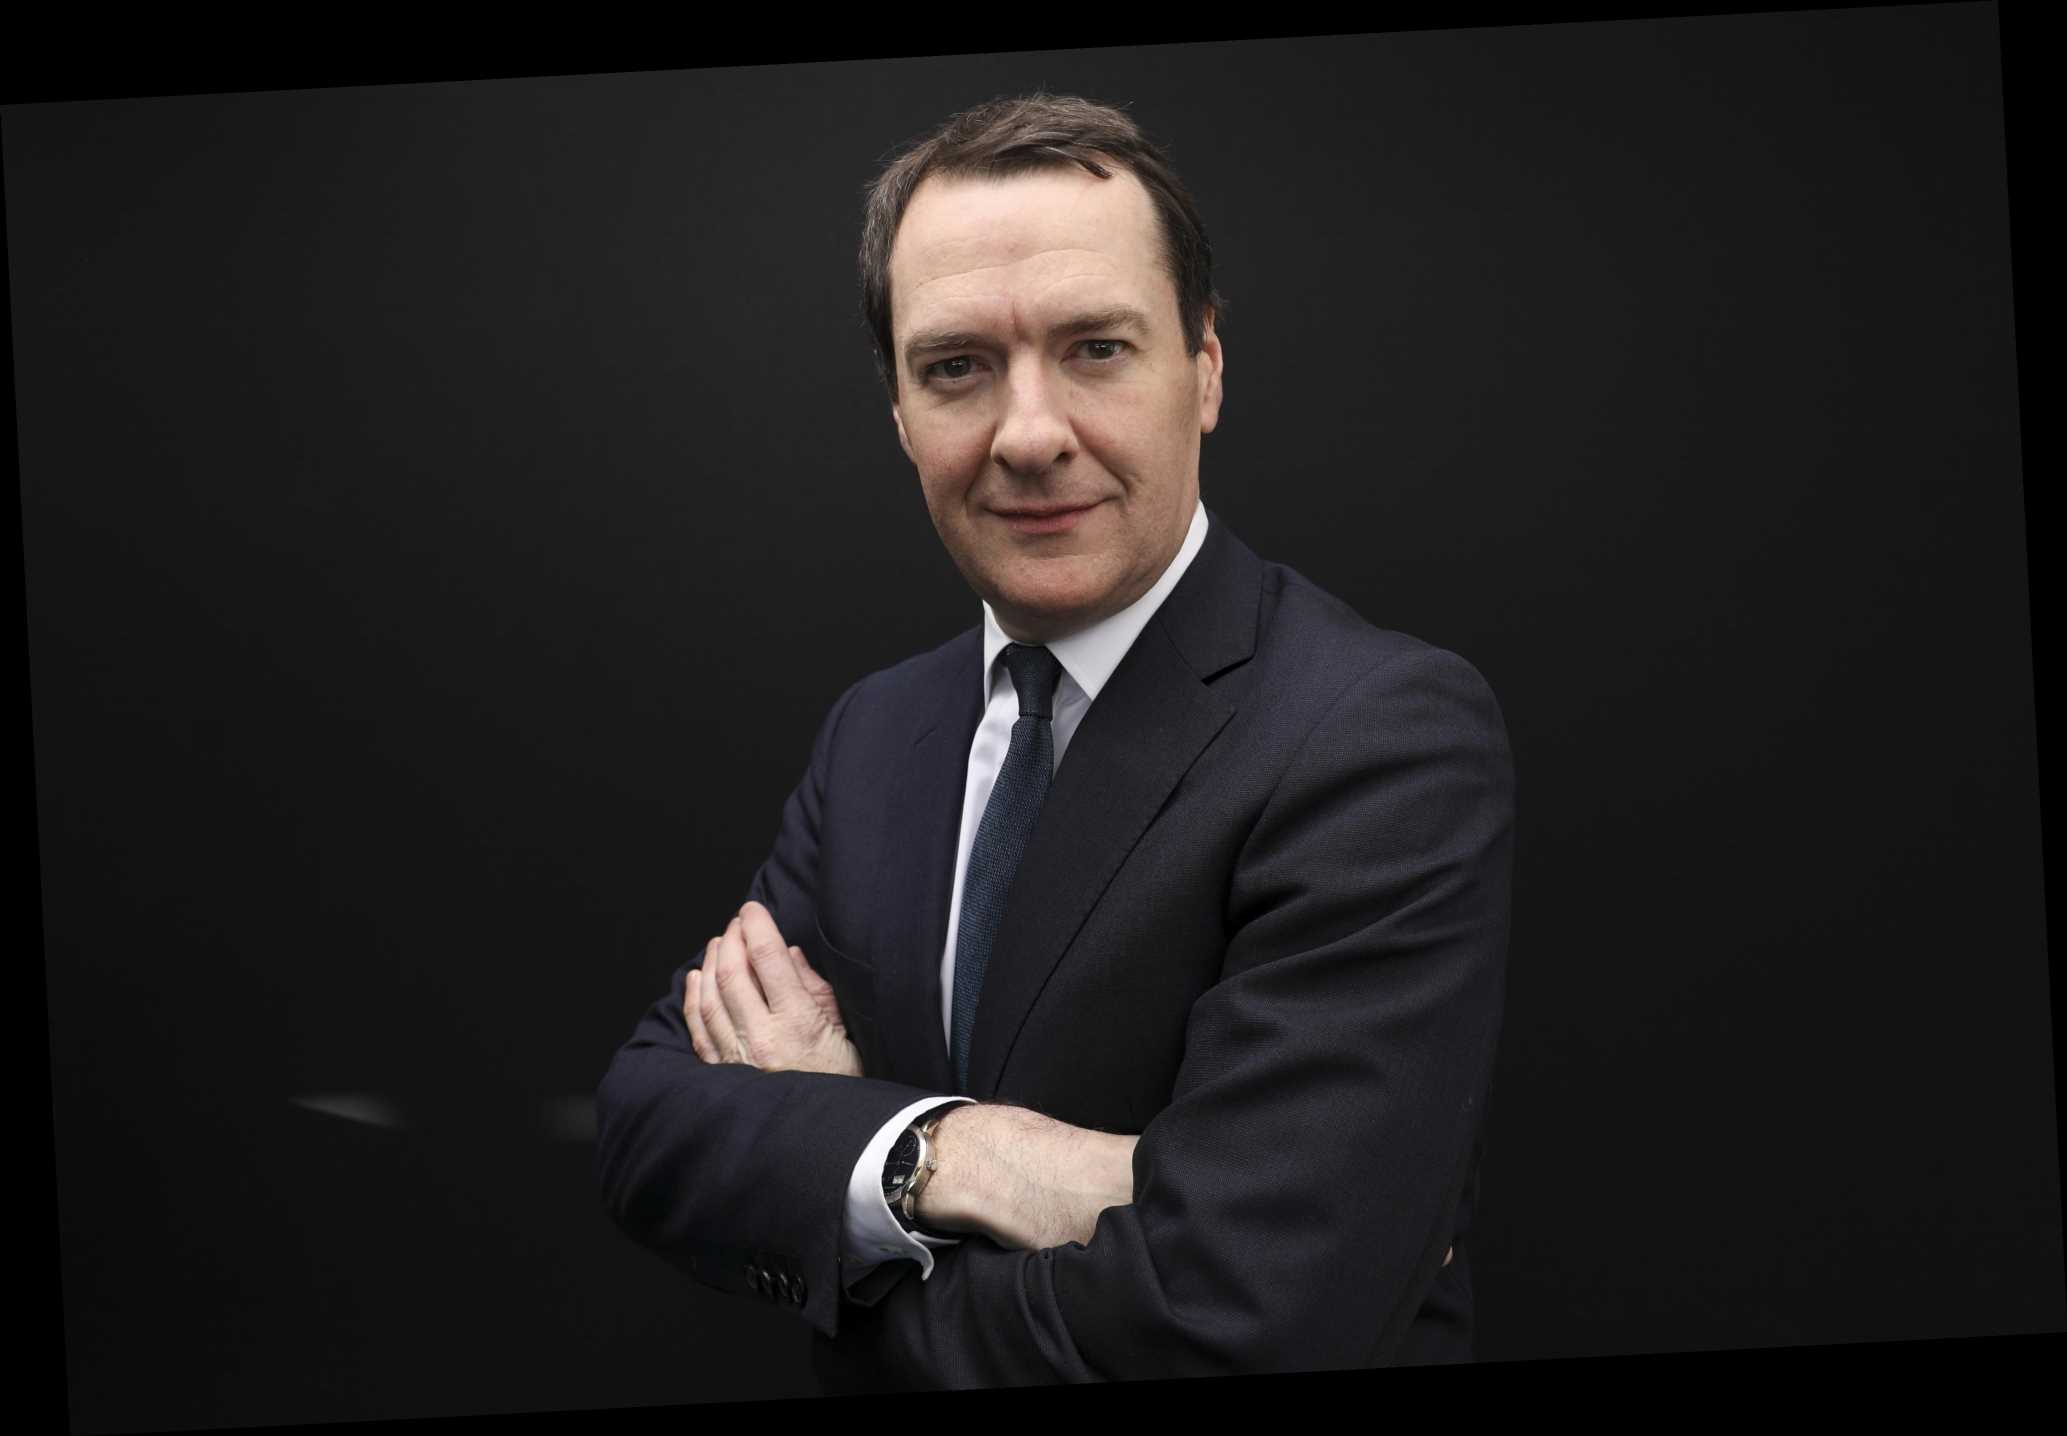 Ex-Chancellor George Osborne 'being lined up to be next BBC chairman on £160,000 salary'